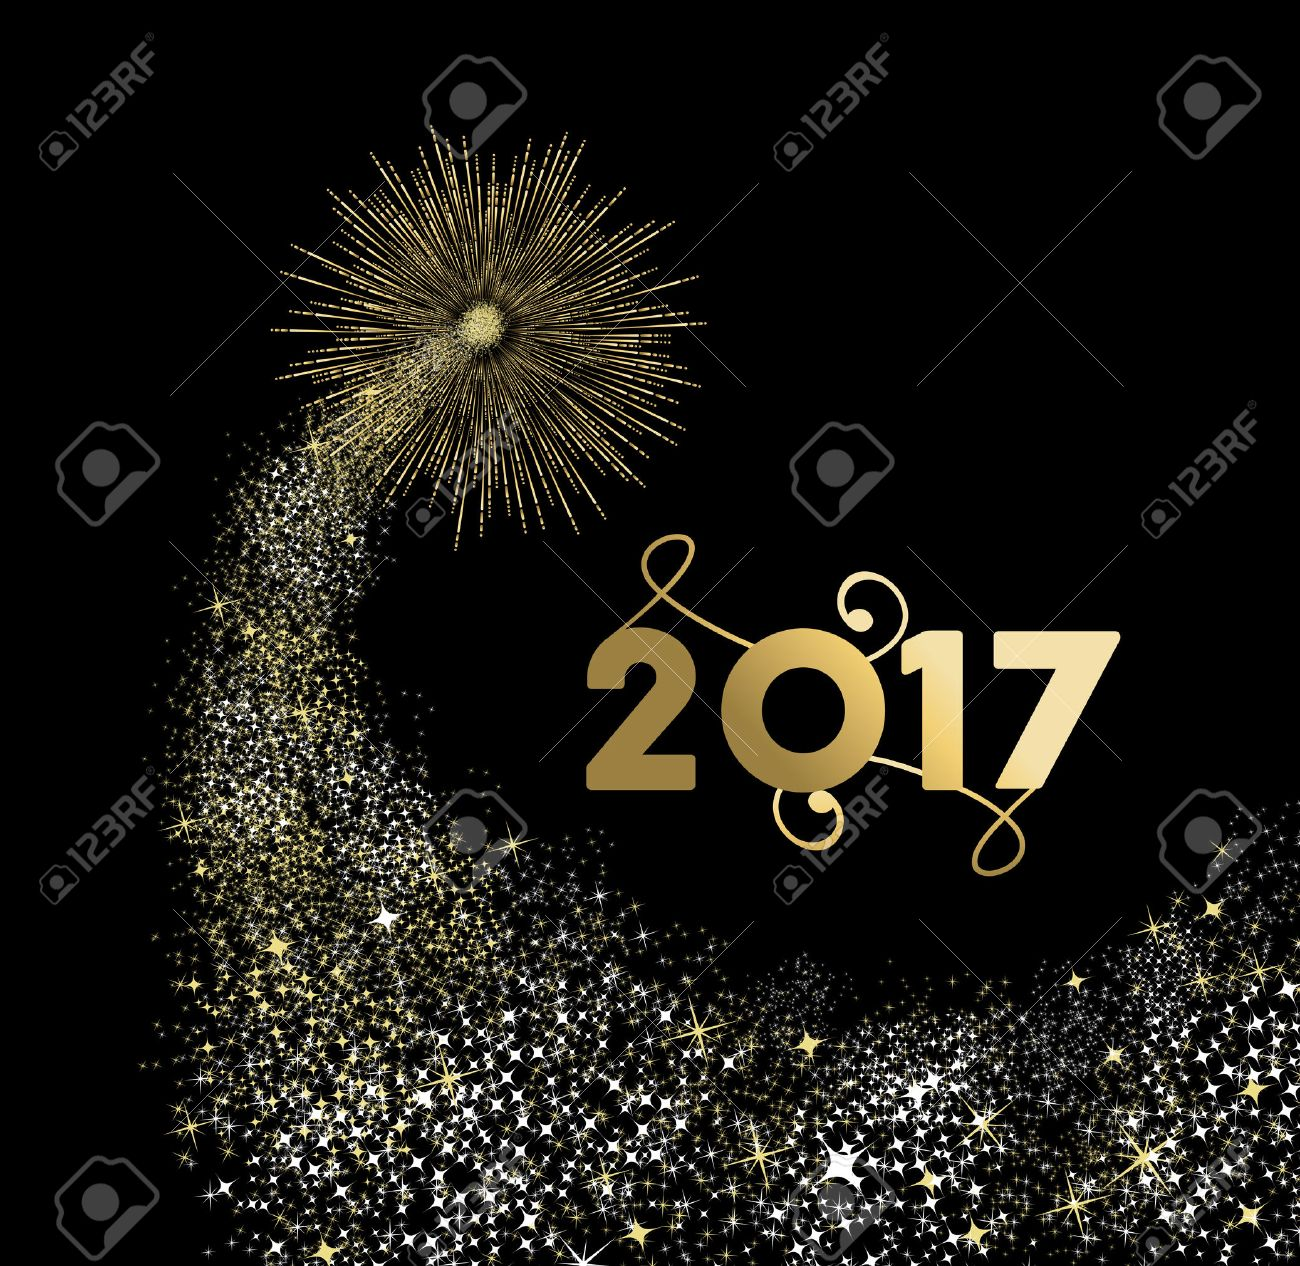 Happy New Year 2017 gold design with firework explosion illustration. Ideal for holiday greeting card or poster. vector. - 63255319